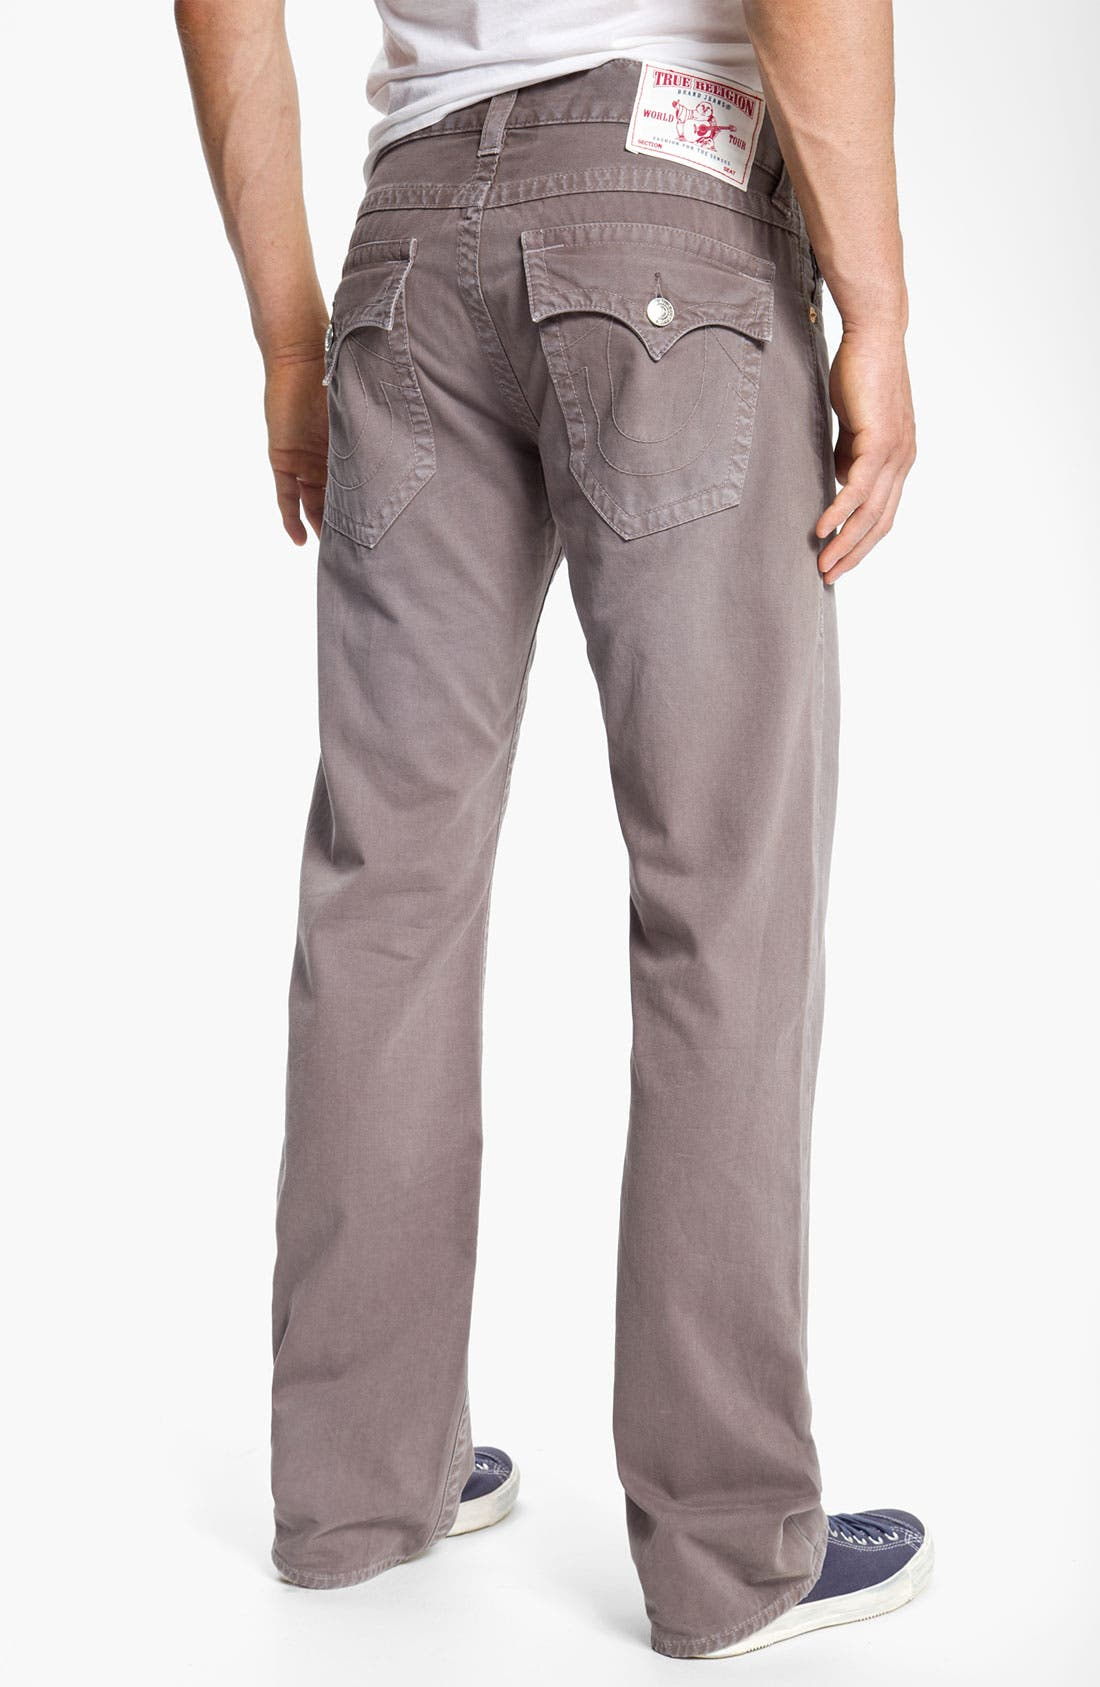 'Ricky' Straight Leg Cotton Twill Pants,                         Main,                         color, 027